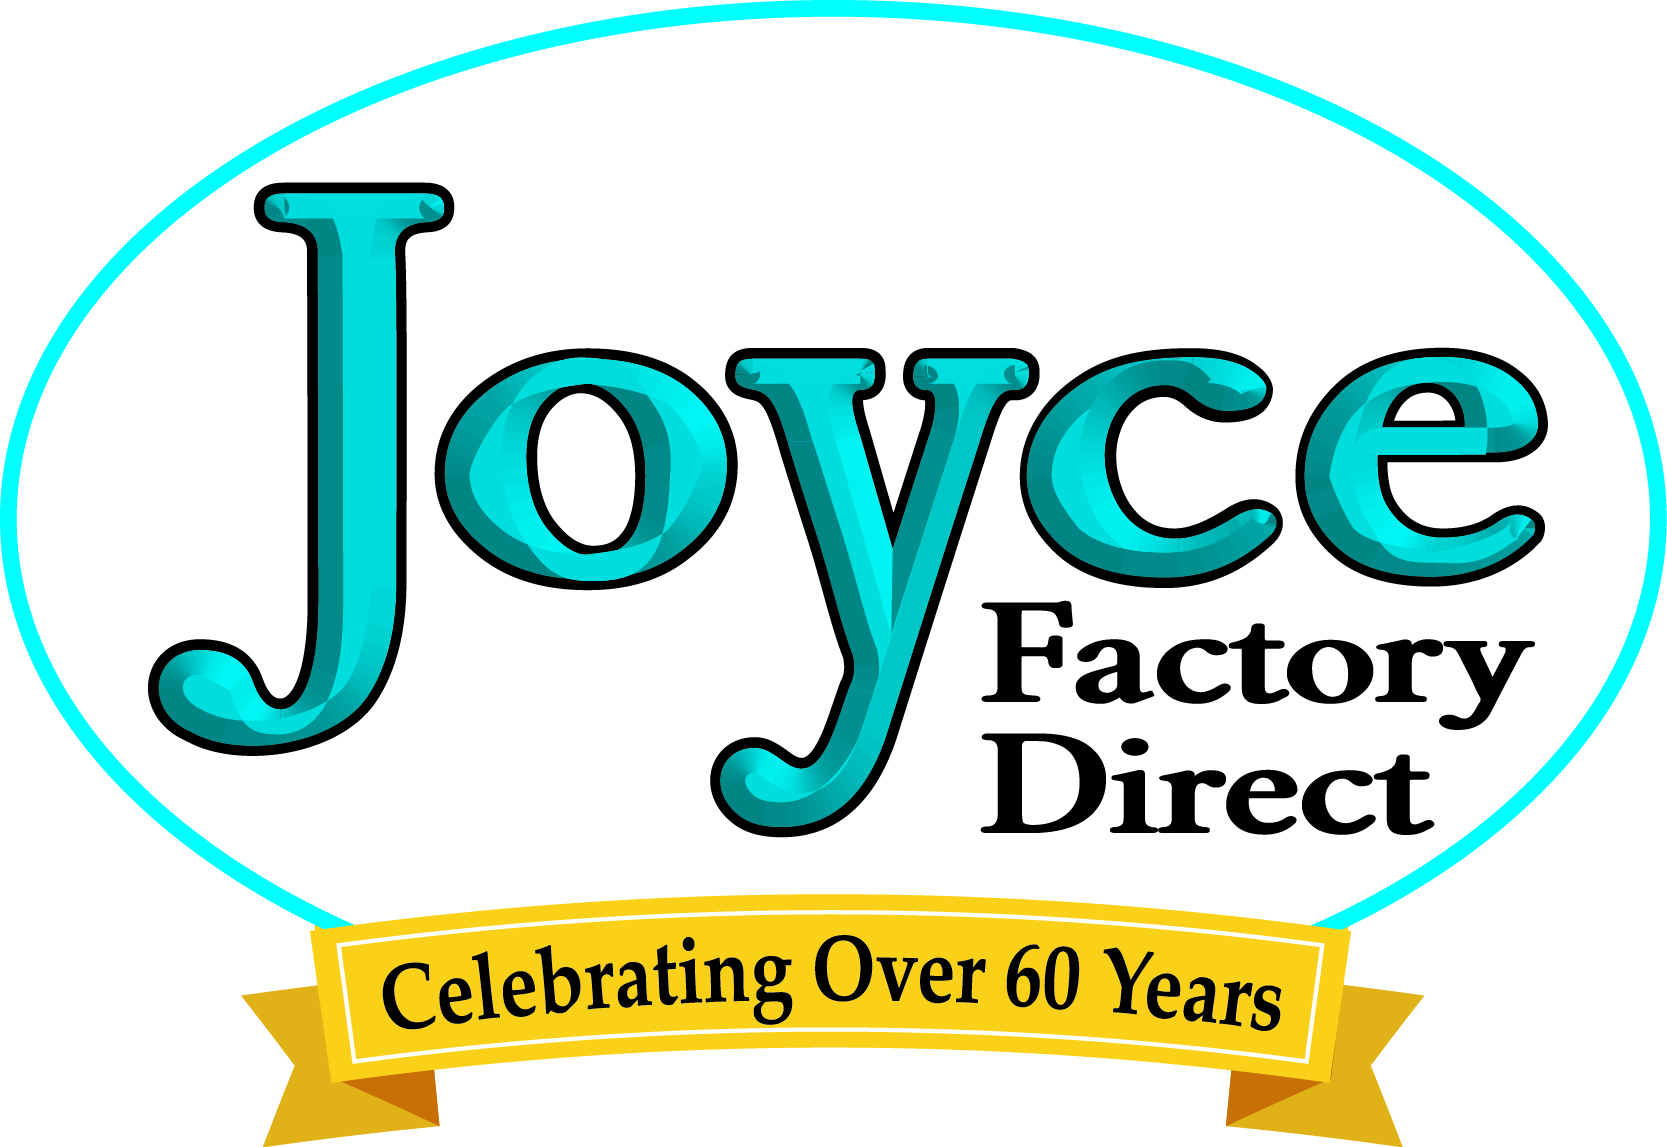 celebrating-over-60-years-joyce